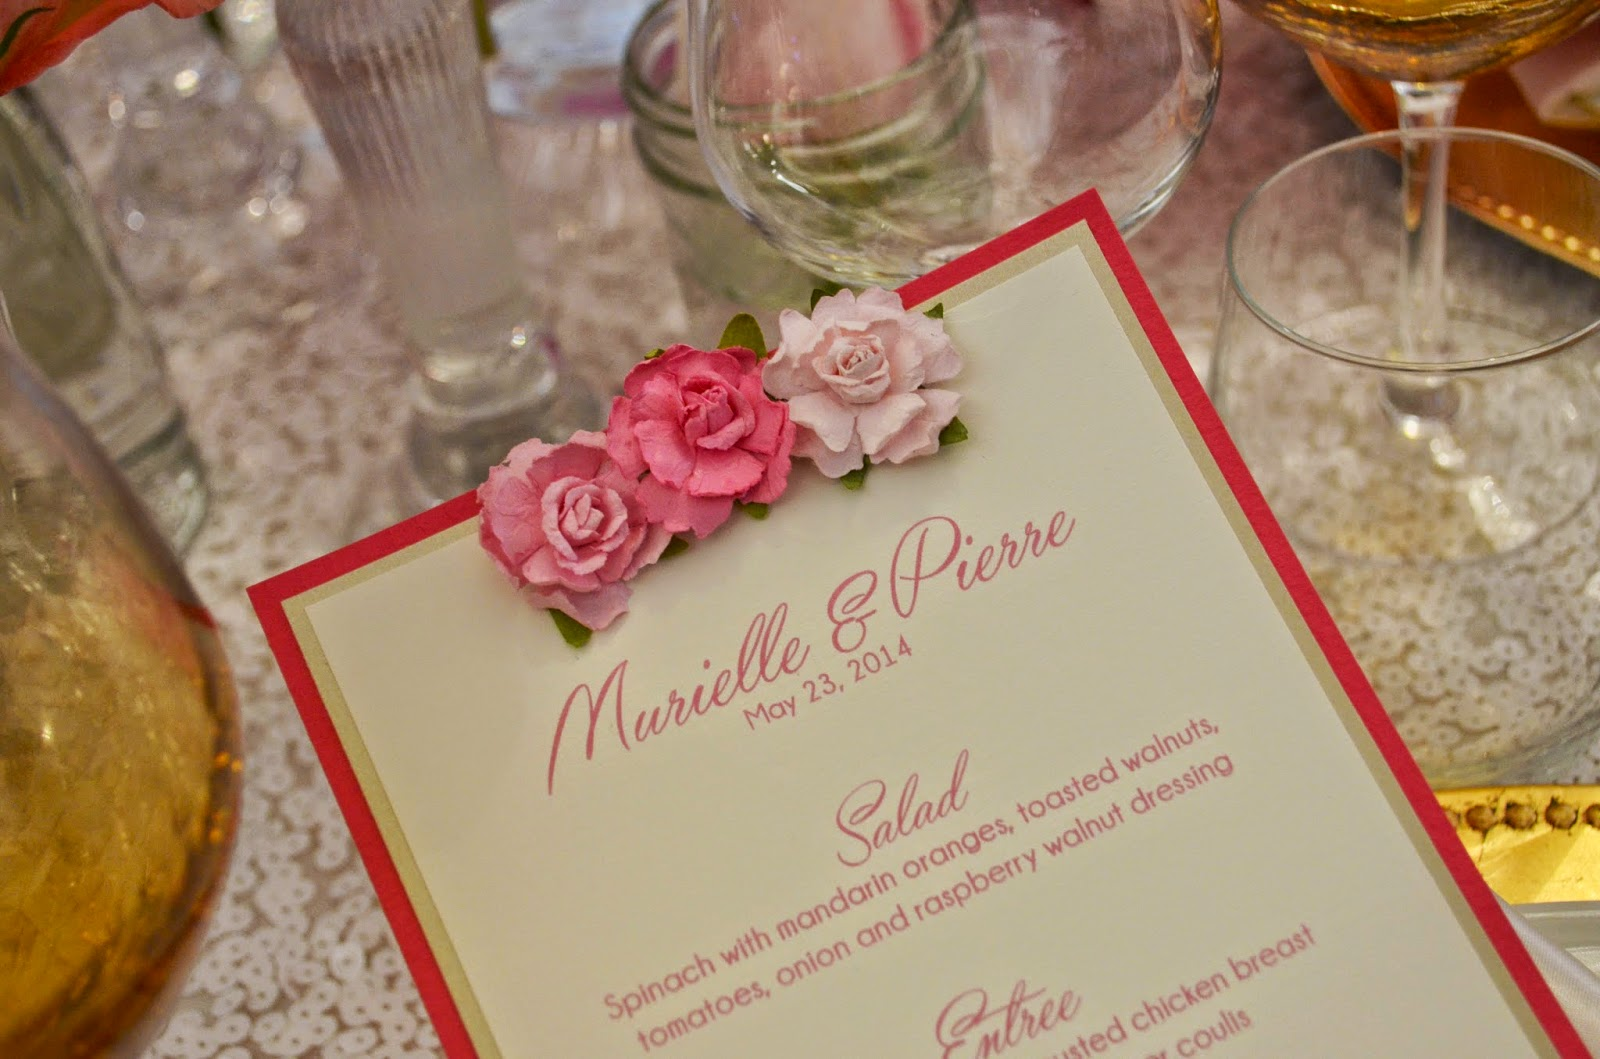 Menu with handmade paper flowers